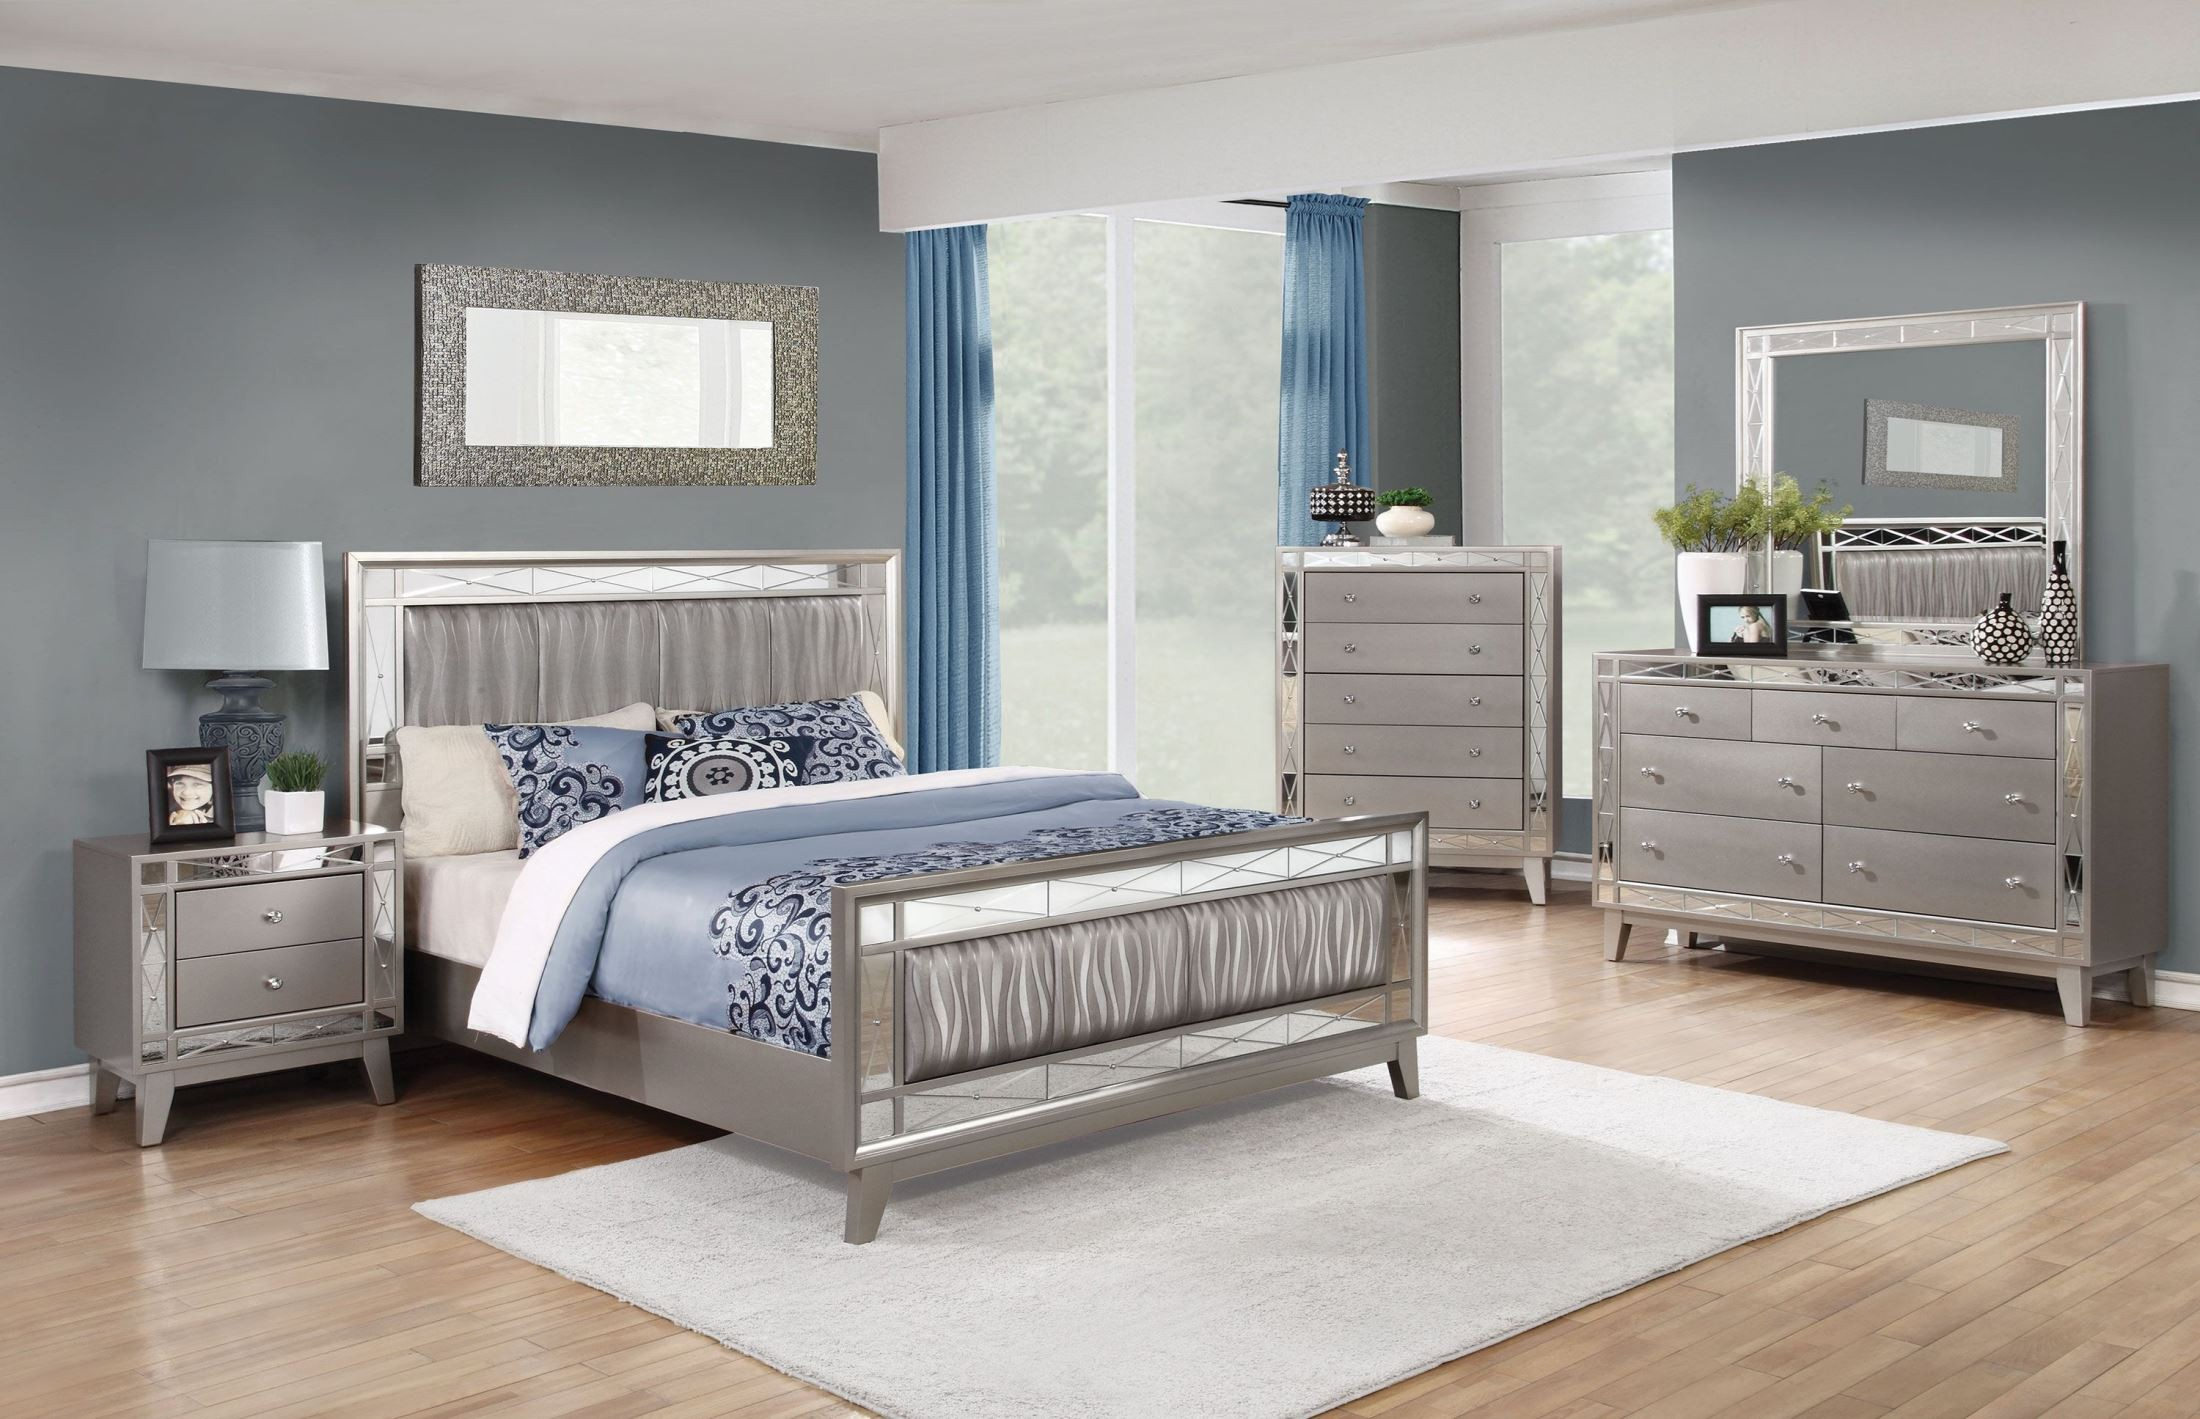 Leighton Metallic Mercury Panel Bedroom Set from Coaster Coleman